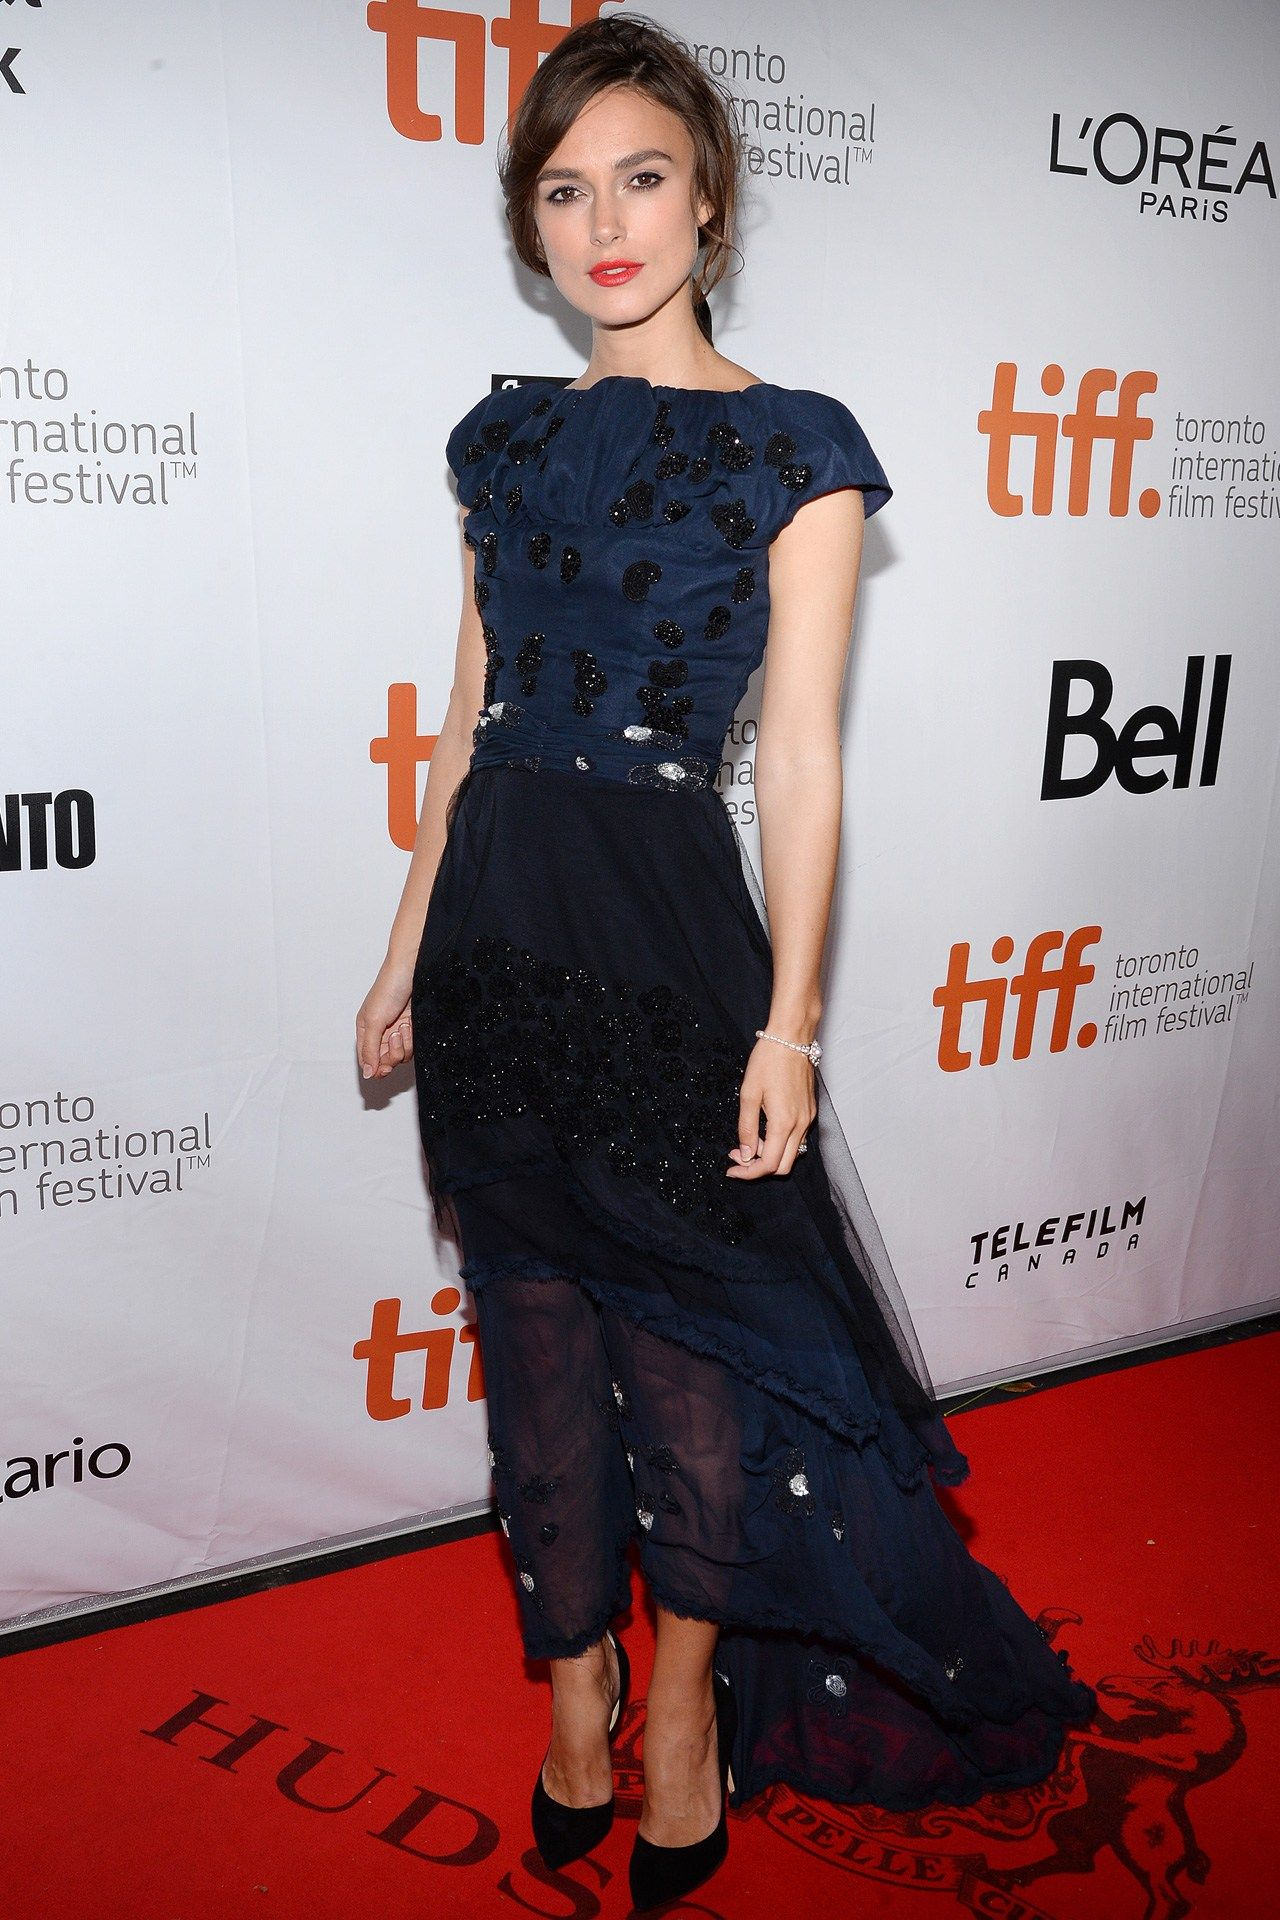 Toronto Film Festival's Best Dressed: Keira Knightley's Double Hit recommend